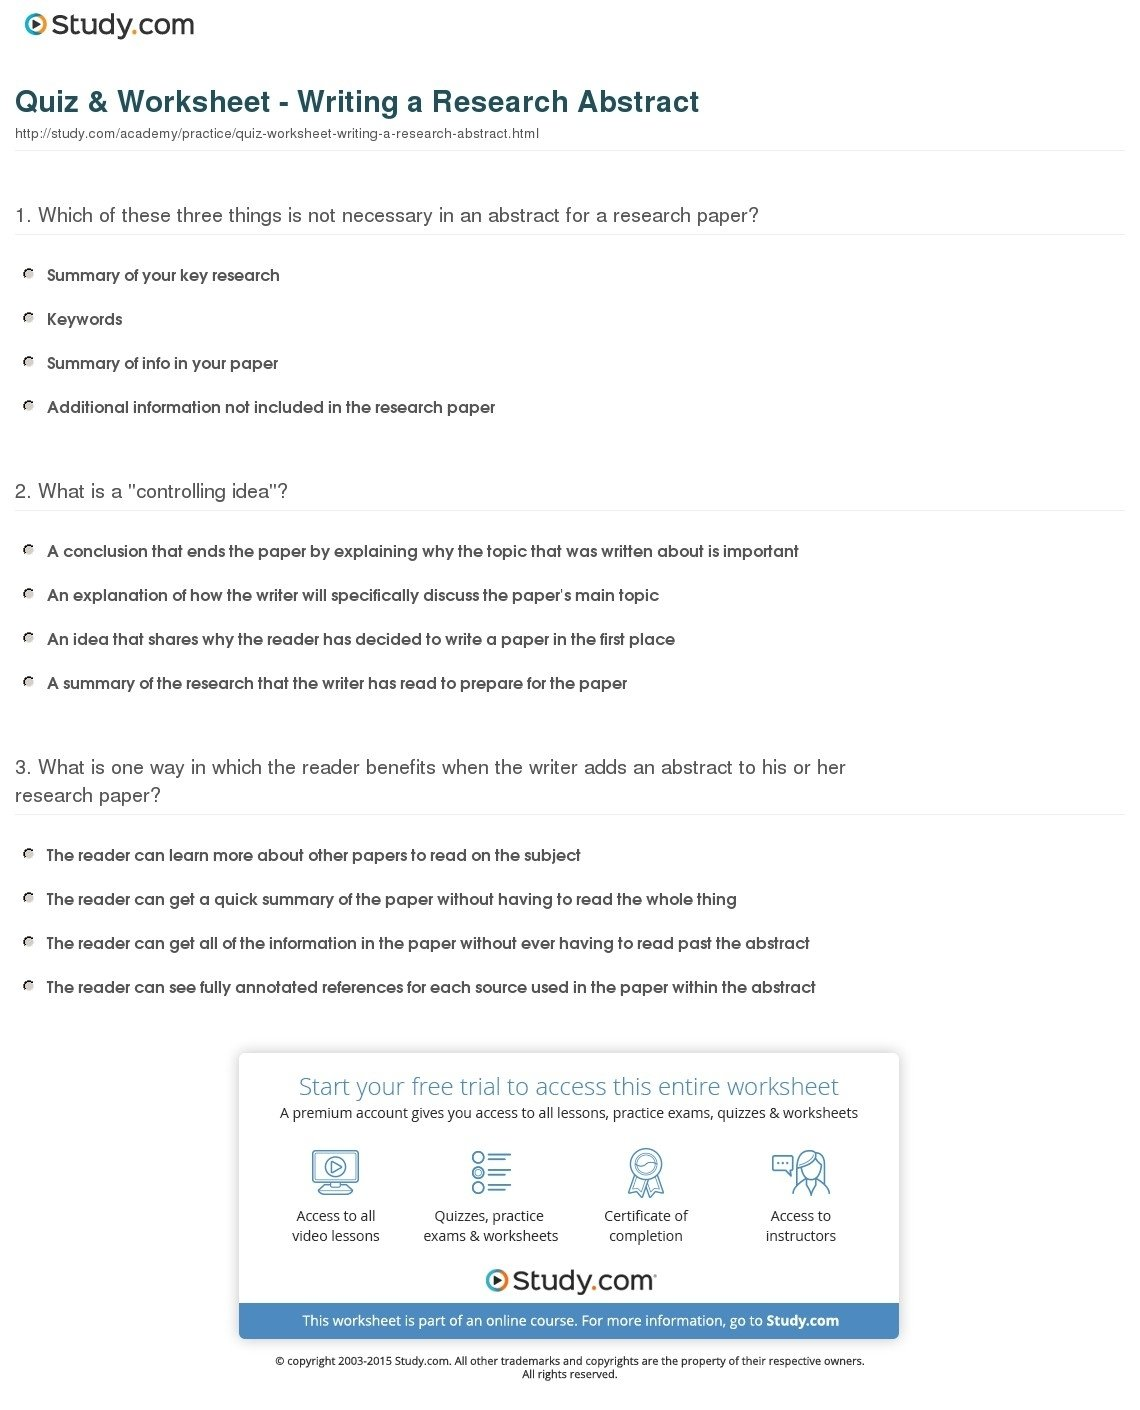 quiz worksheet writing a research abstract study com what is the in